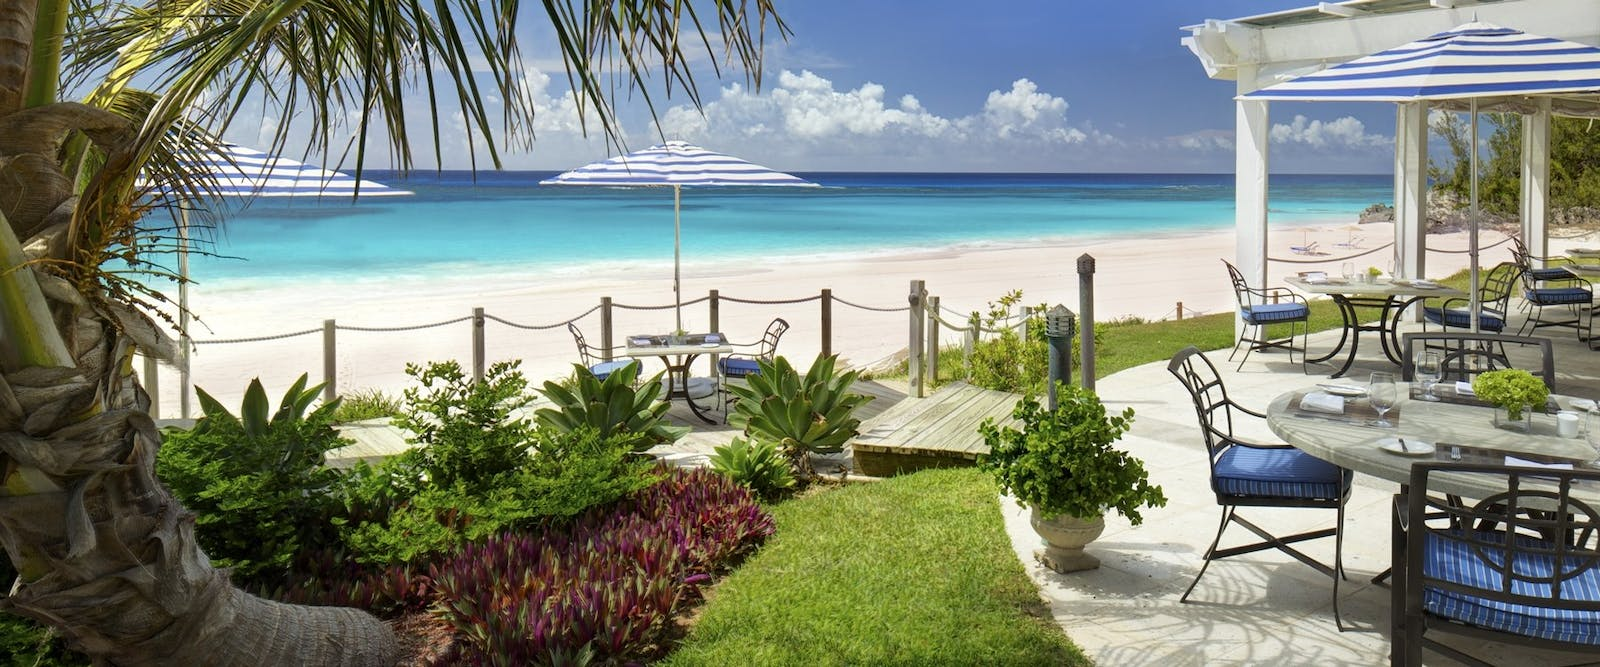 Beach Club Restaurant at Rosewood Tuckers Point, Bermuda